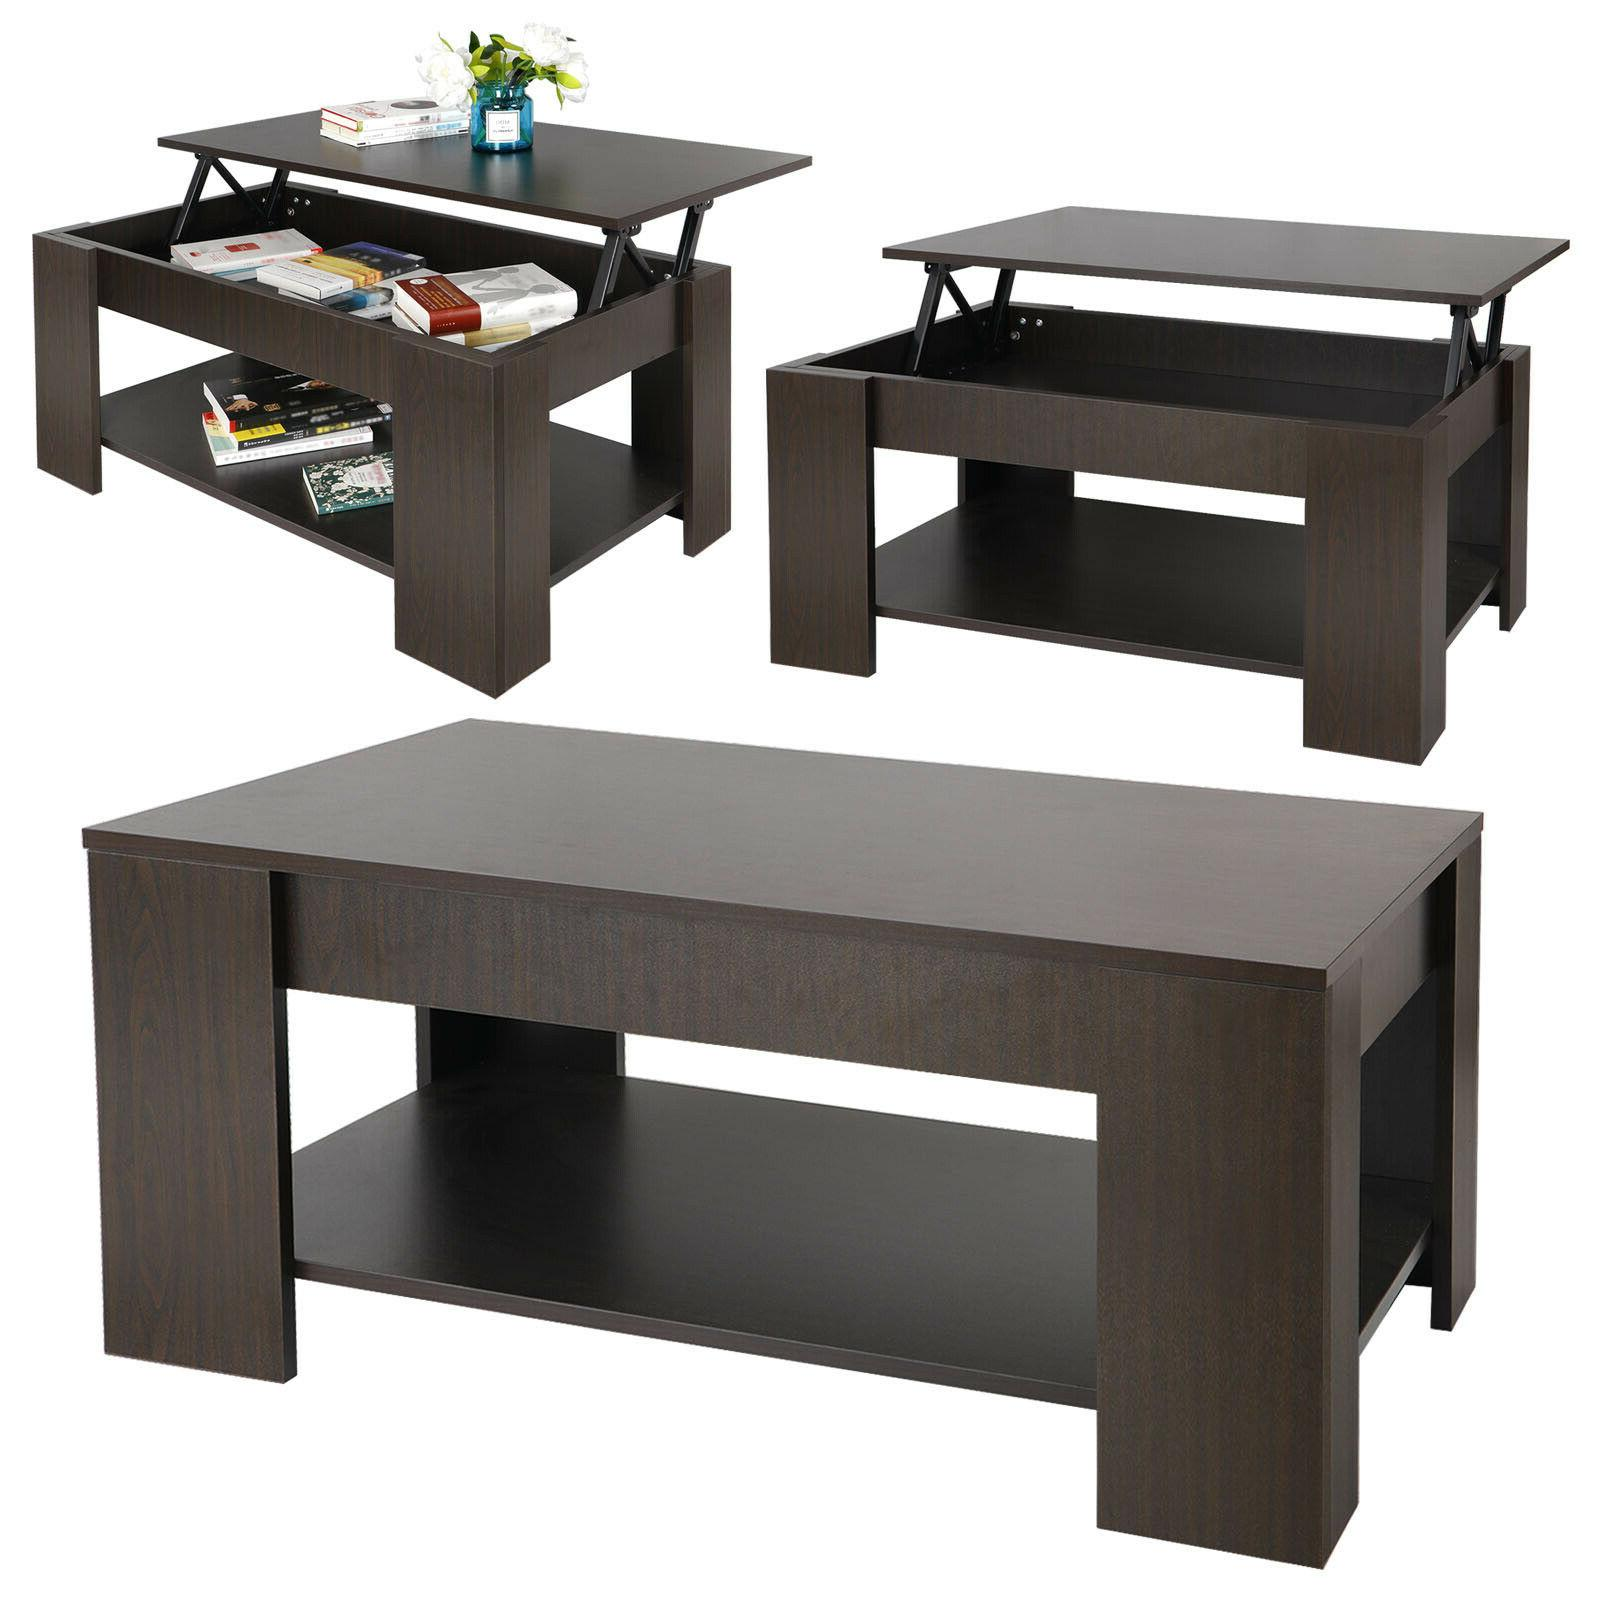 Lift-up Coffee Table Hidden Storage Cabinet Longlasting Brown Finish